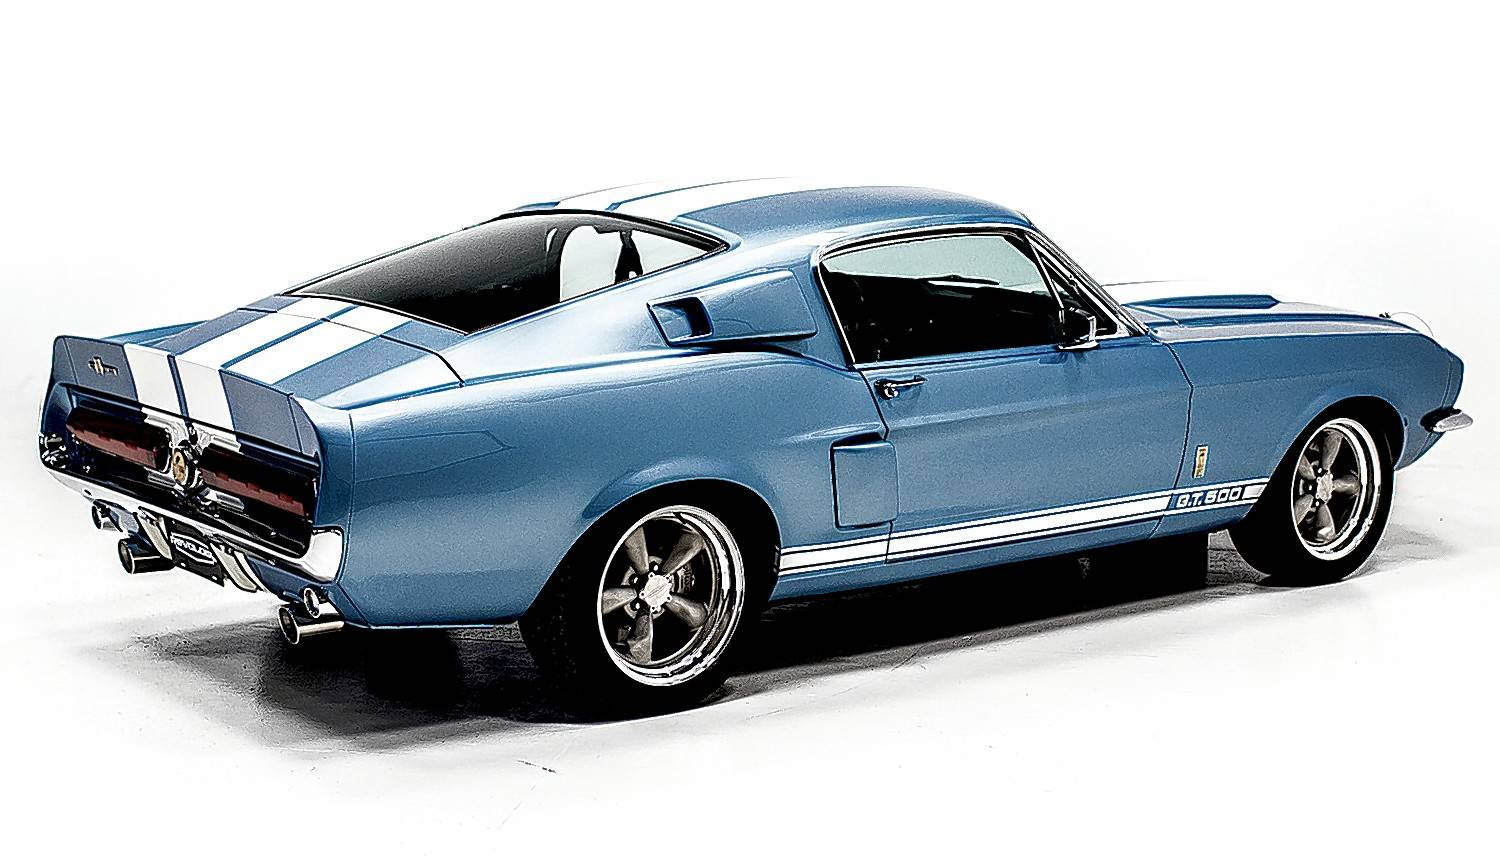 Revology Pays Homage To The Ford Shelby Gt500